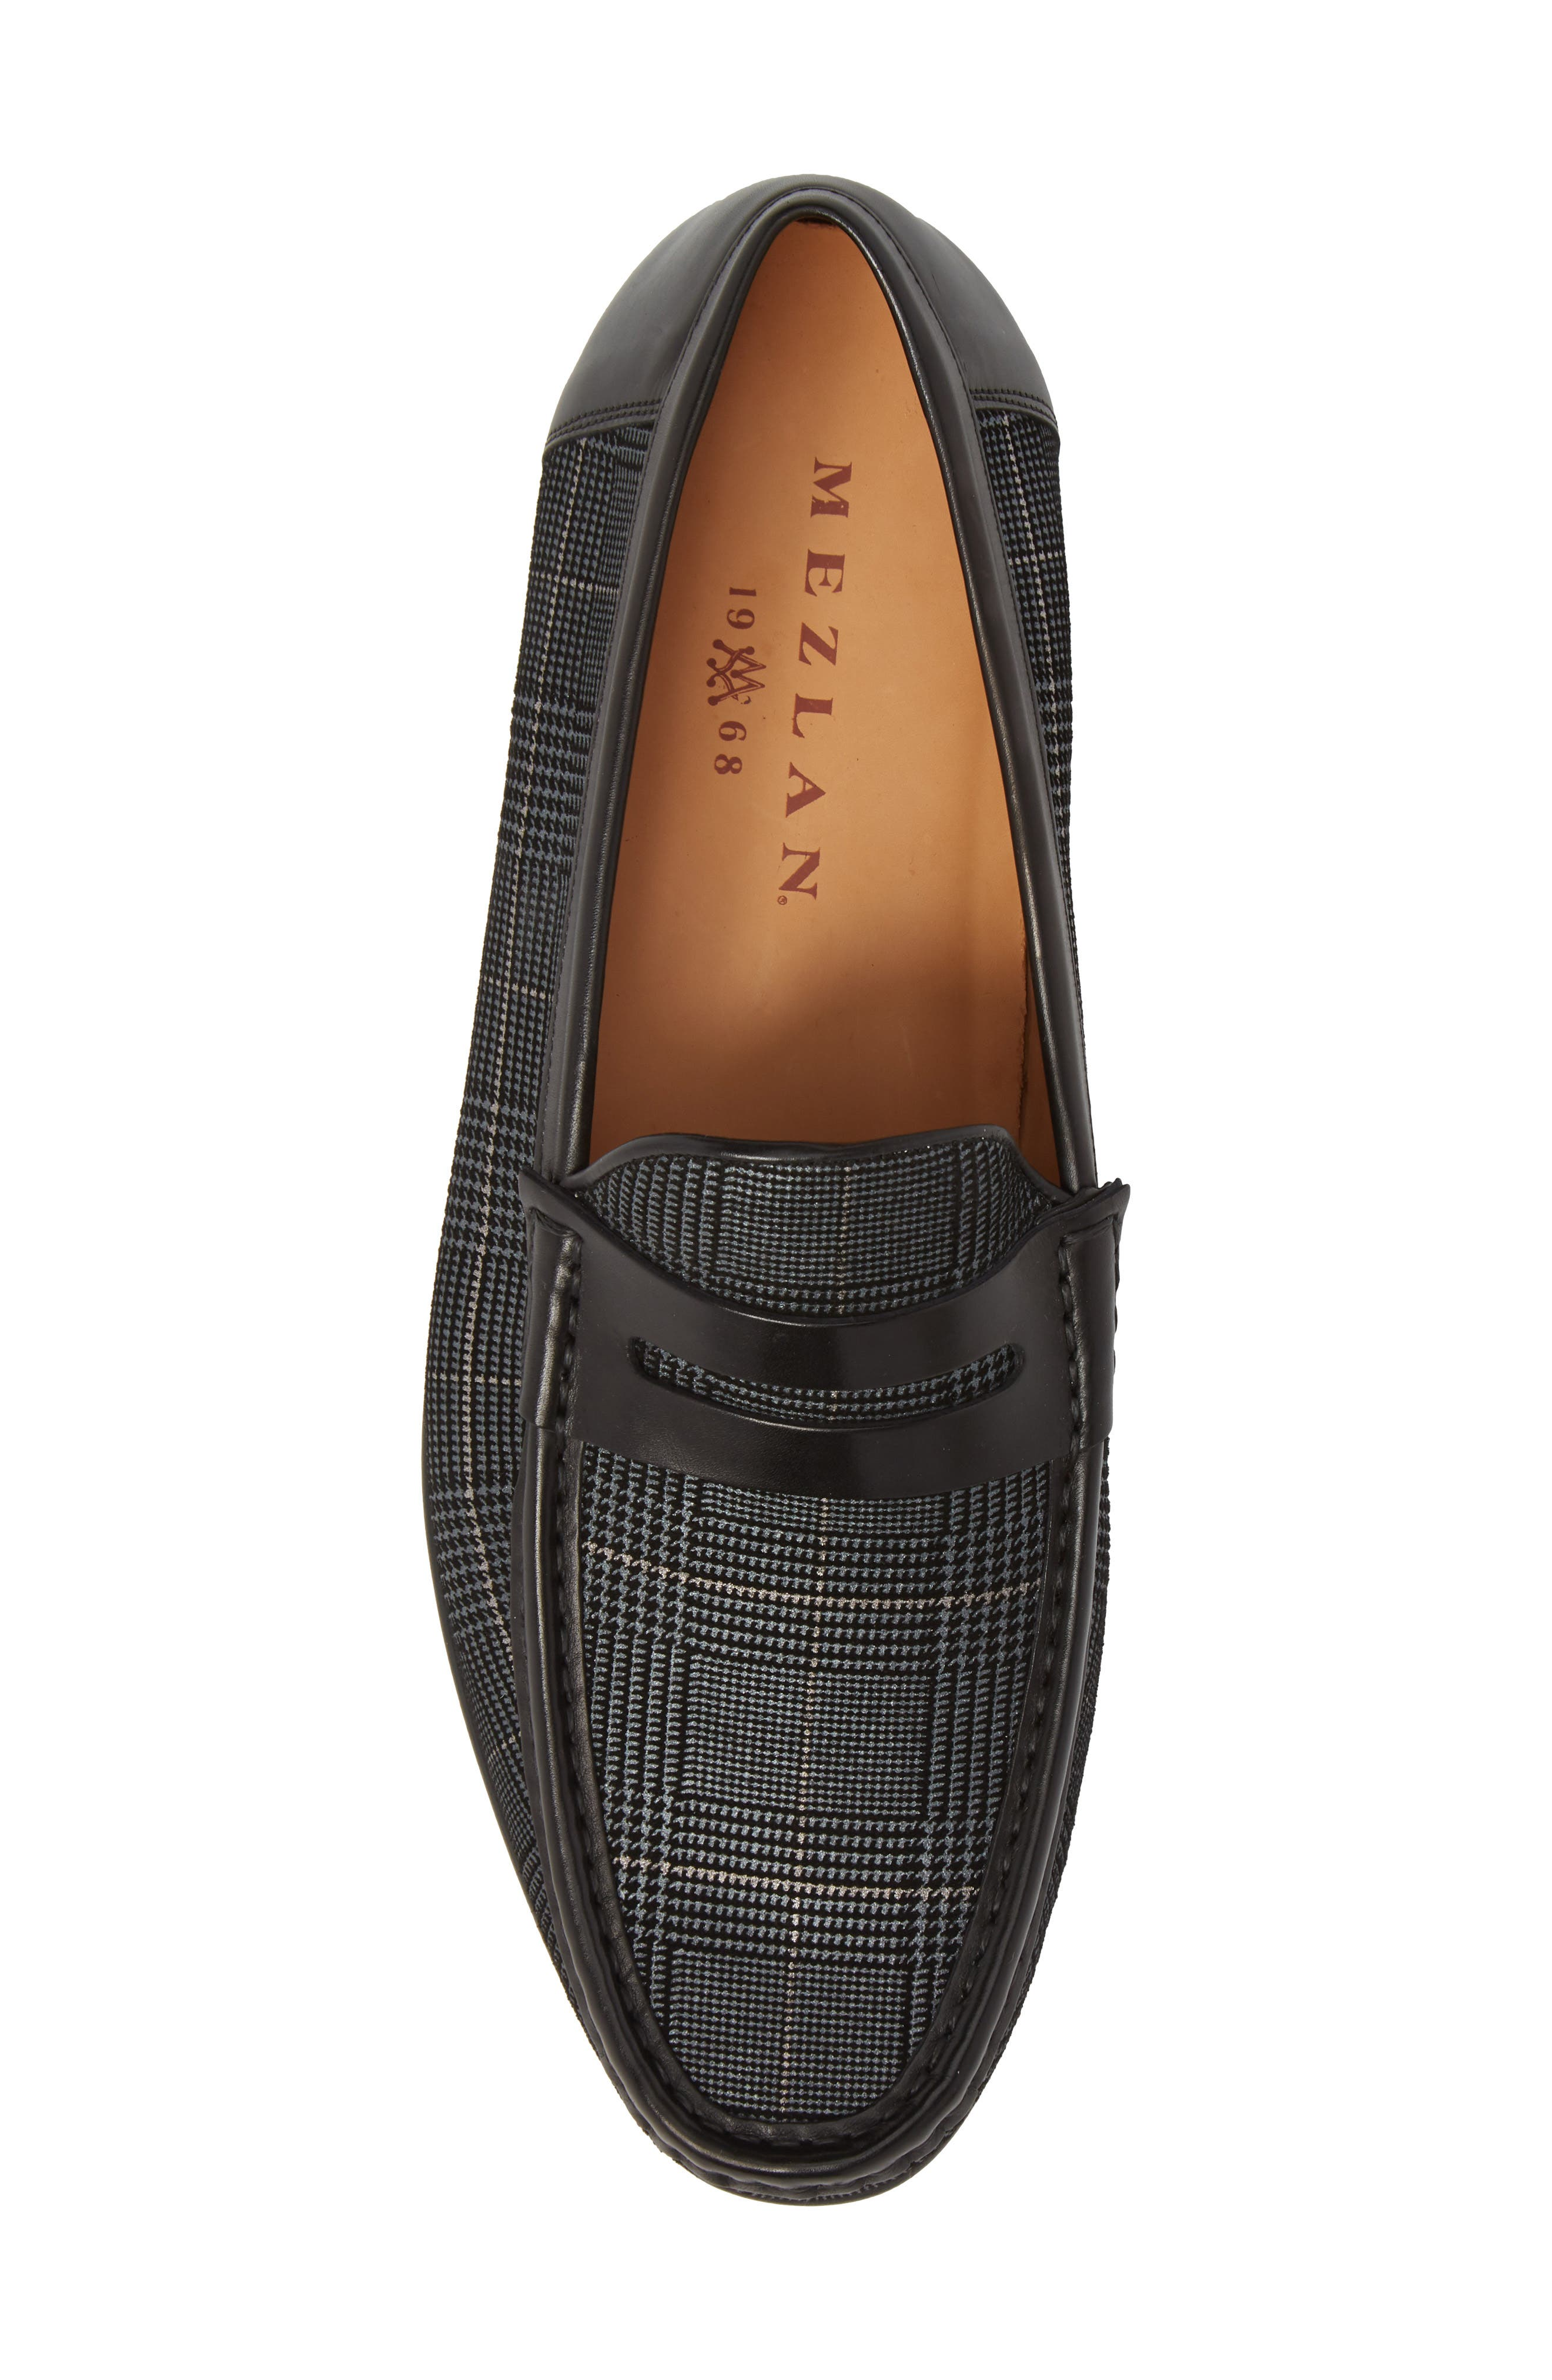 Lares I Houndstooth Penny Loafer,                             Alternate thumbnail 5, color,                             BLACK SUEDE/ LEATHER